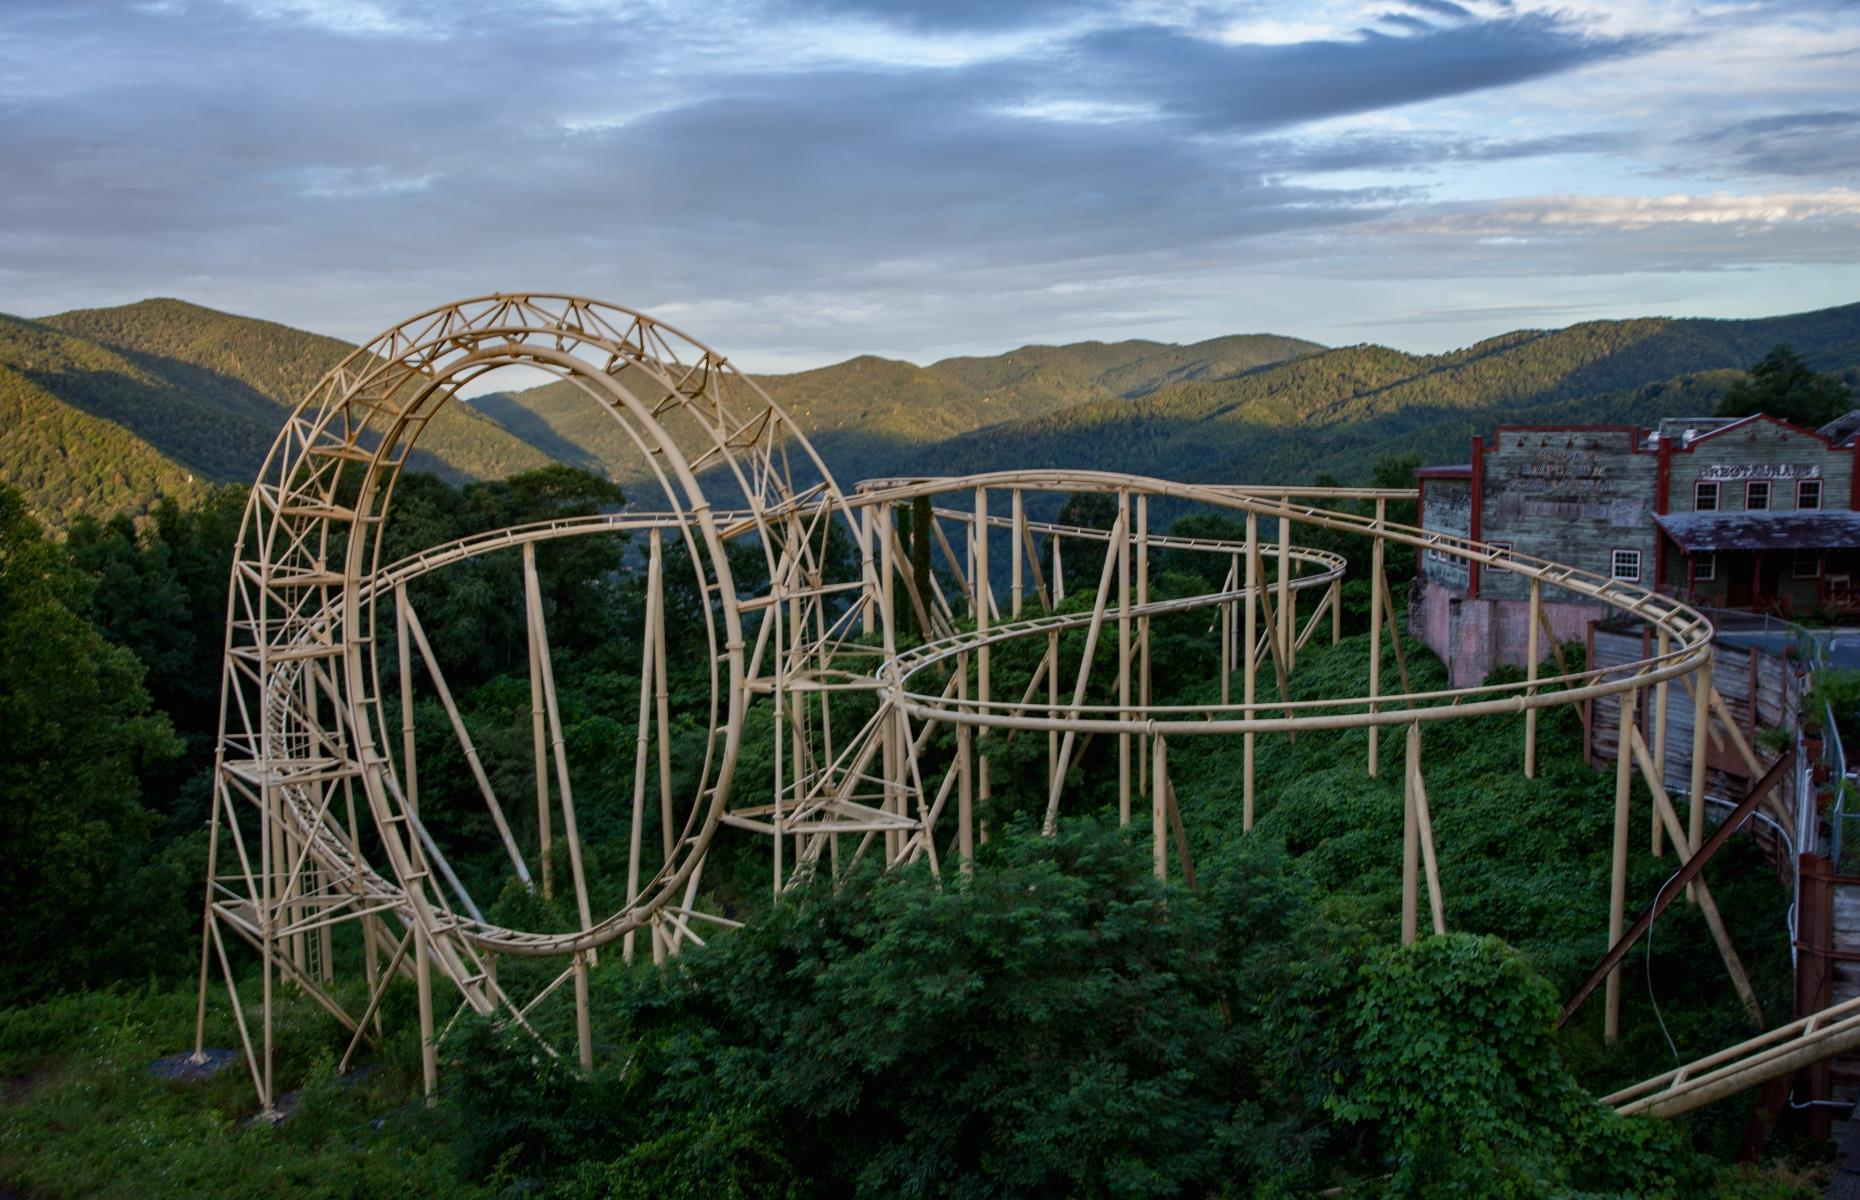 Slide 33 of 40: Known as Ghost Town in the Sky, this abandoned Wild West-themed amusement park has seen as many ups and downs as its Red Devil roller coaster pictured here. Located on Buck Mountain, a mountaintop site towards the bottom of the Great Smoky Mountains, the park opened in 1961 and closed for good in 2016. Today it lies in ruins. It's featured here courtesy of Abandoned Southeast, in images taken by photographer Leland Kent.